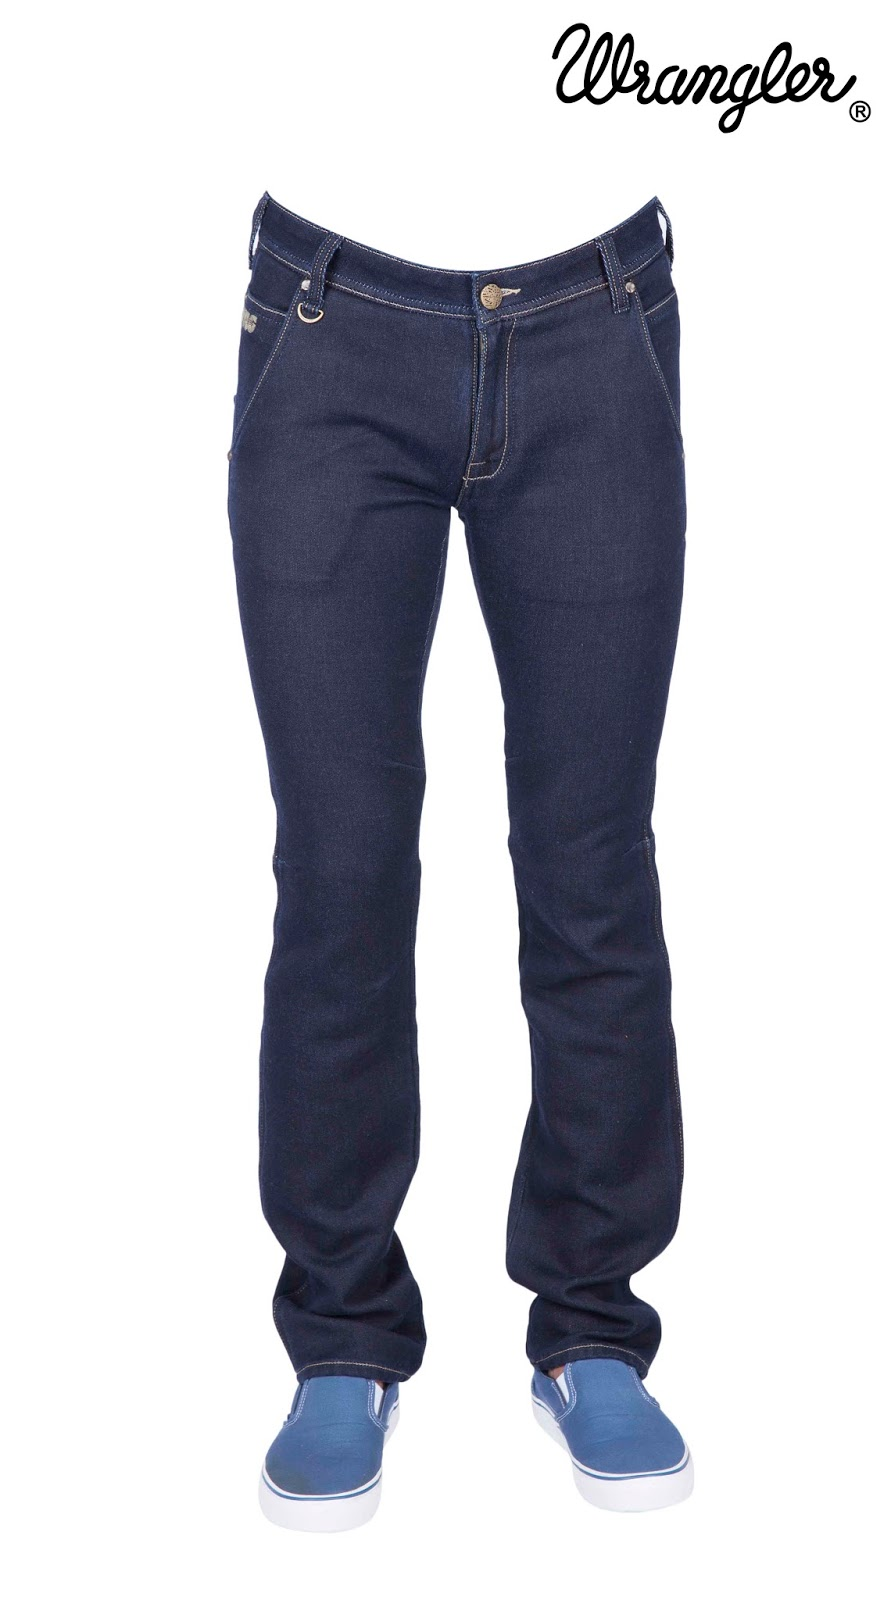 4cddadee Wrangler launches Traveler Jeans with style of a denim and comfort of a  sweat pant